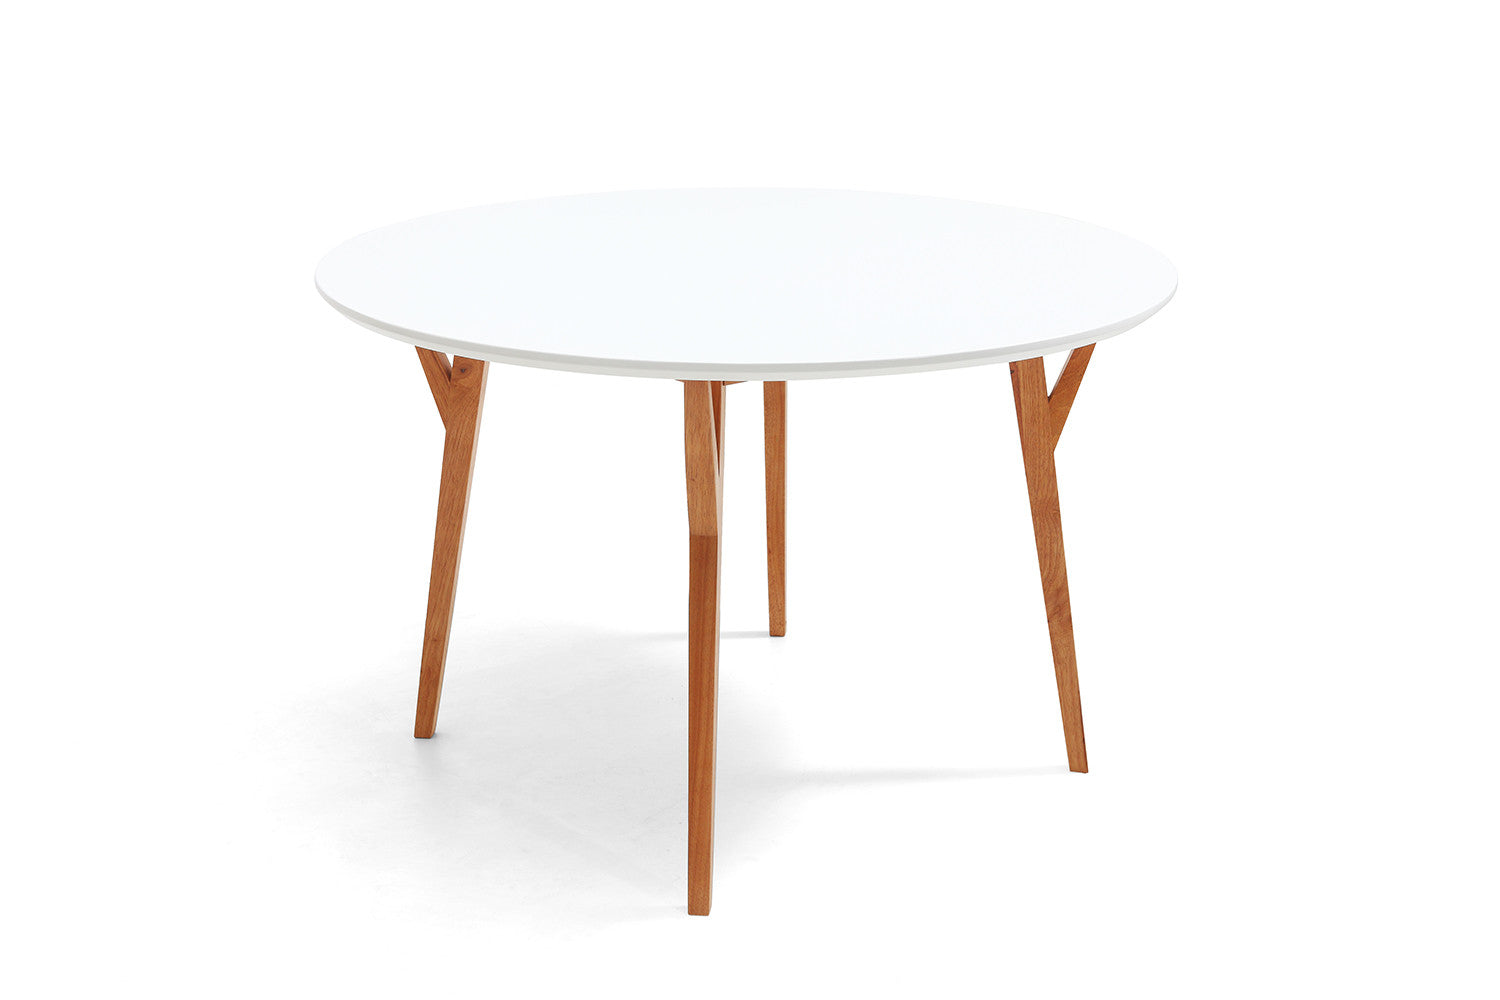 Table de salle manger ronde design scandinave moesa for Table salle a manger bois design